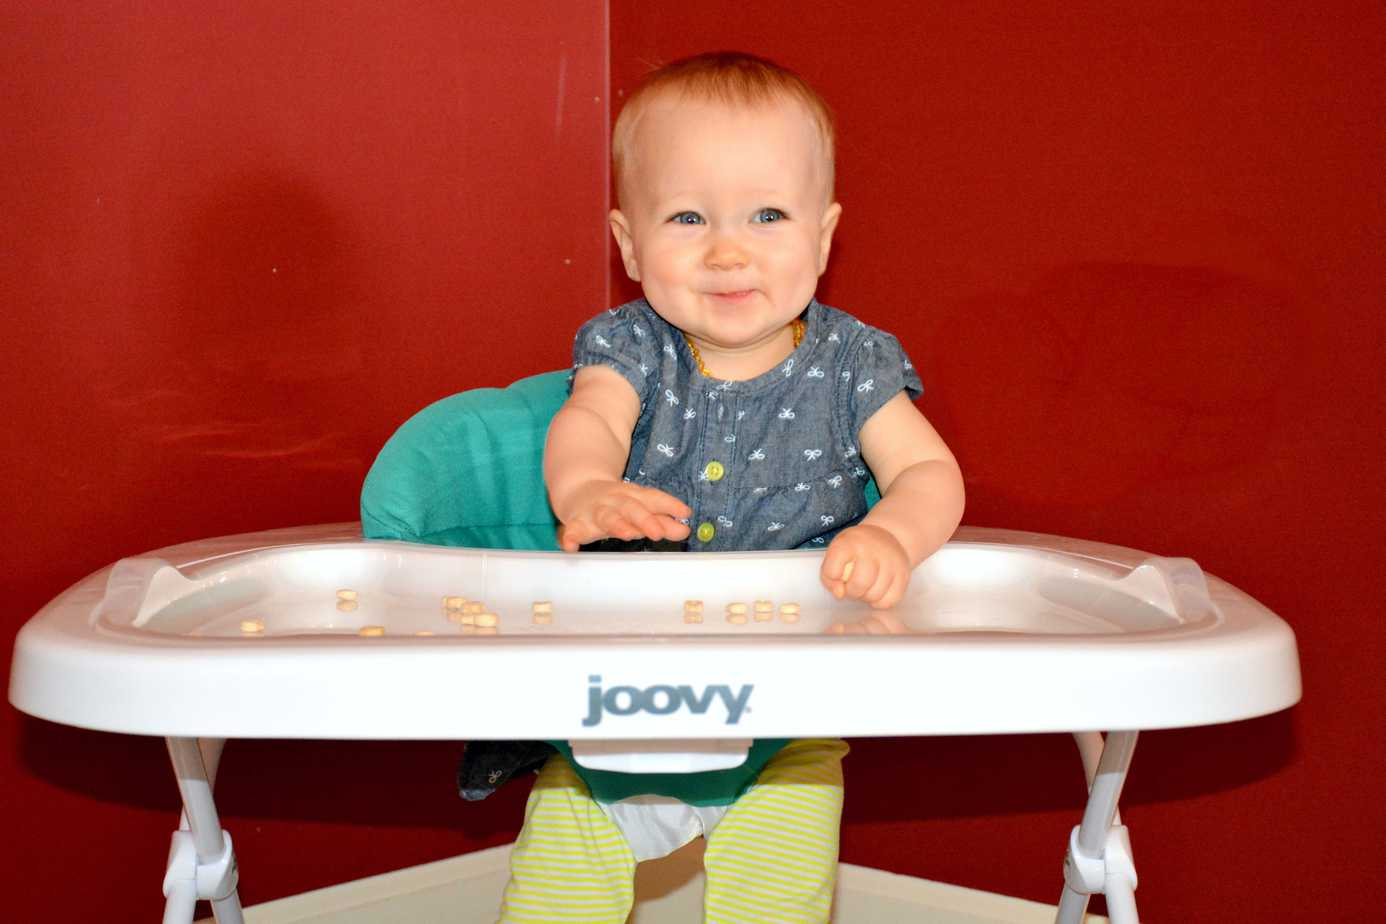 Everything You Need to Know about the Joovy Spoon